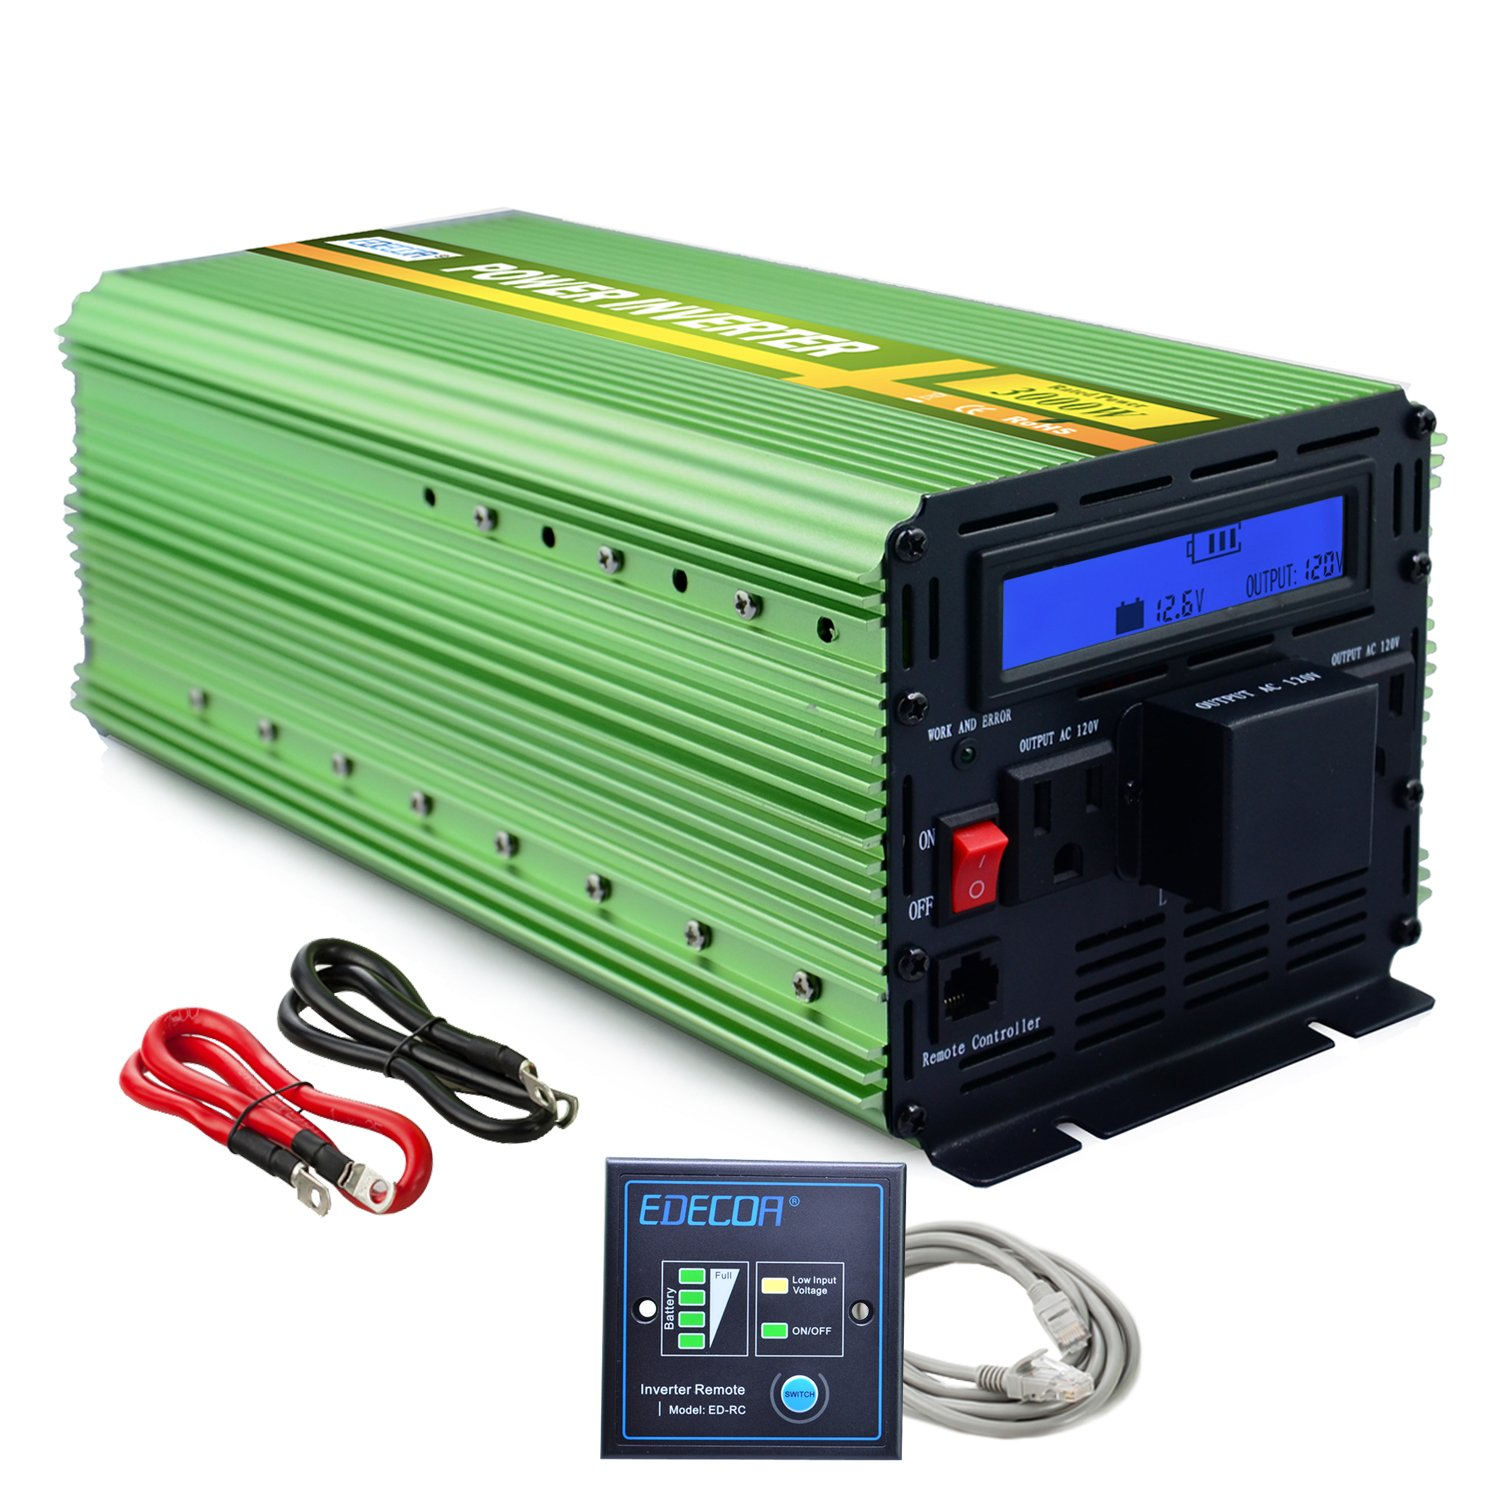 Edecoa 3000W Power Inverter DC 12V to 110V AC with LCD Display and Remote by EDECOA